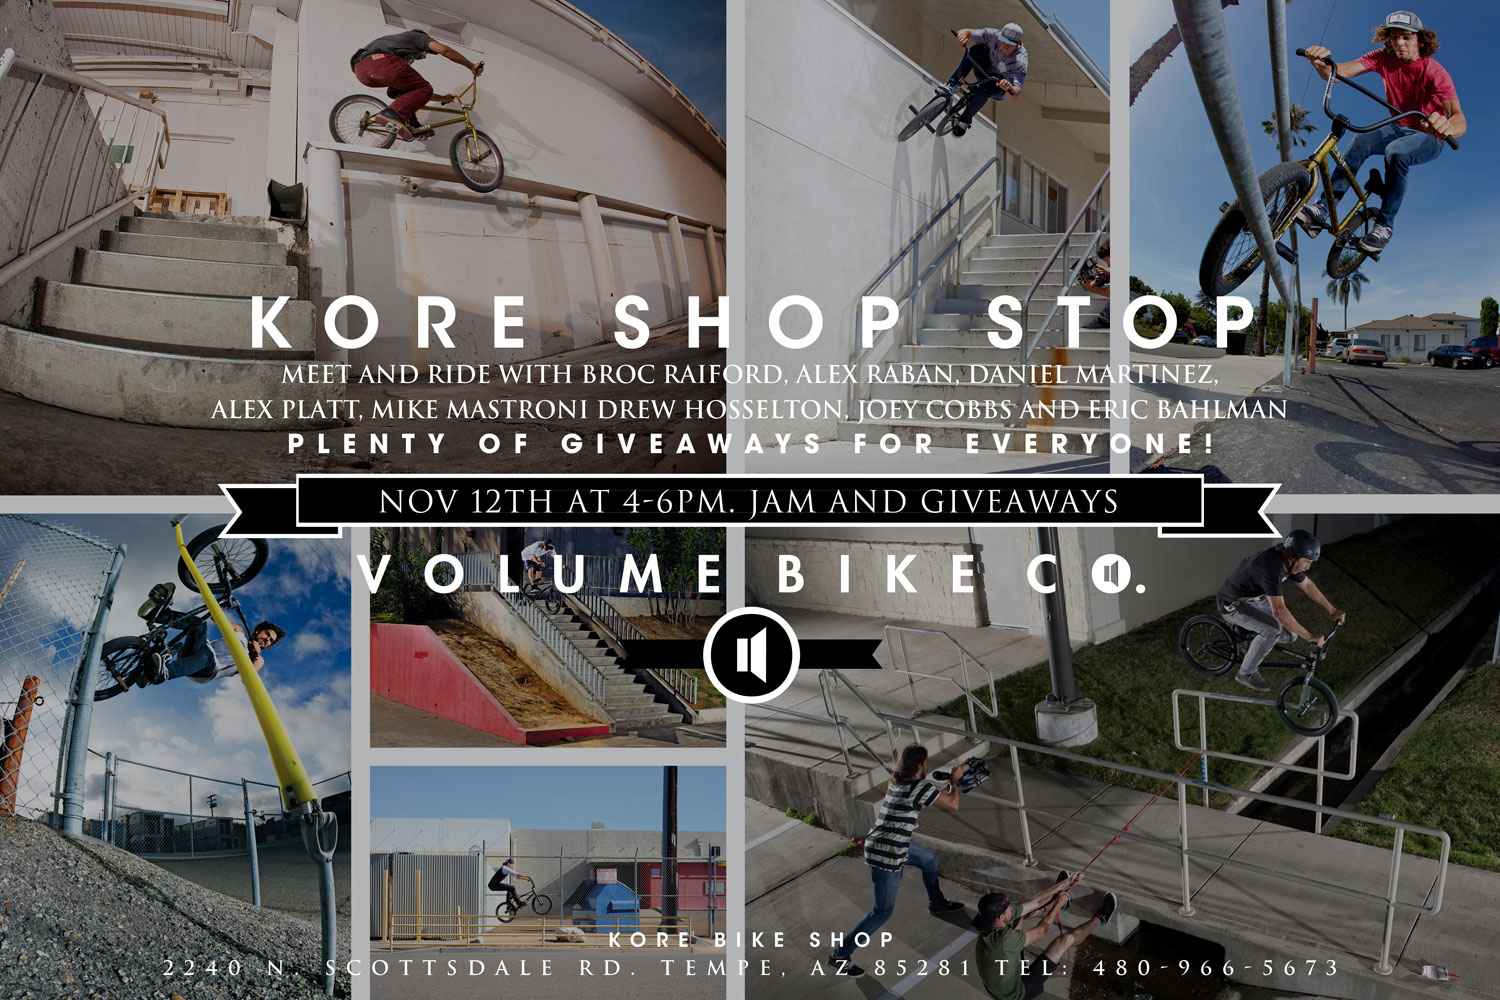 flyer_shop_stop_kore2